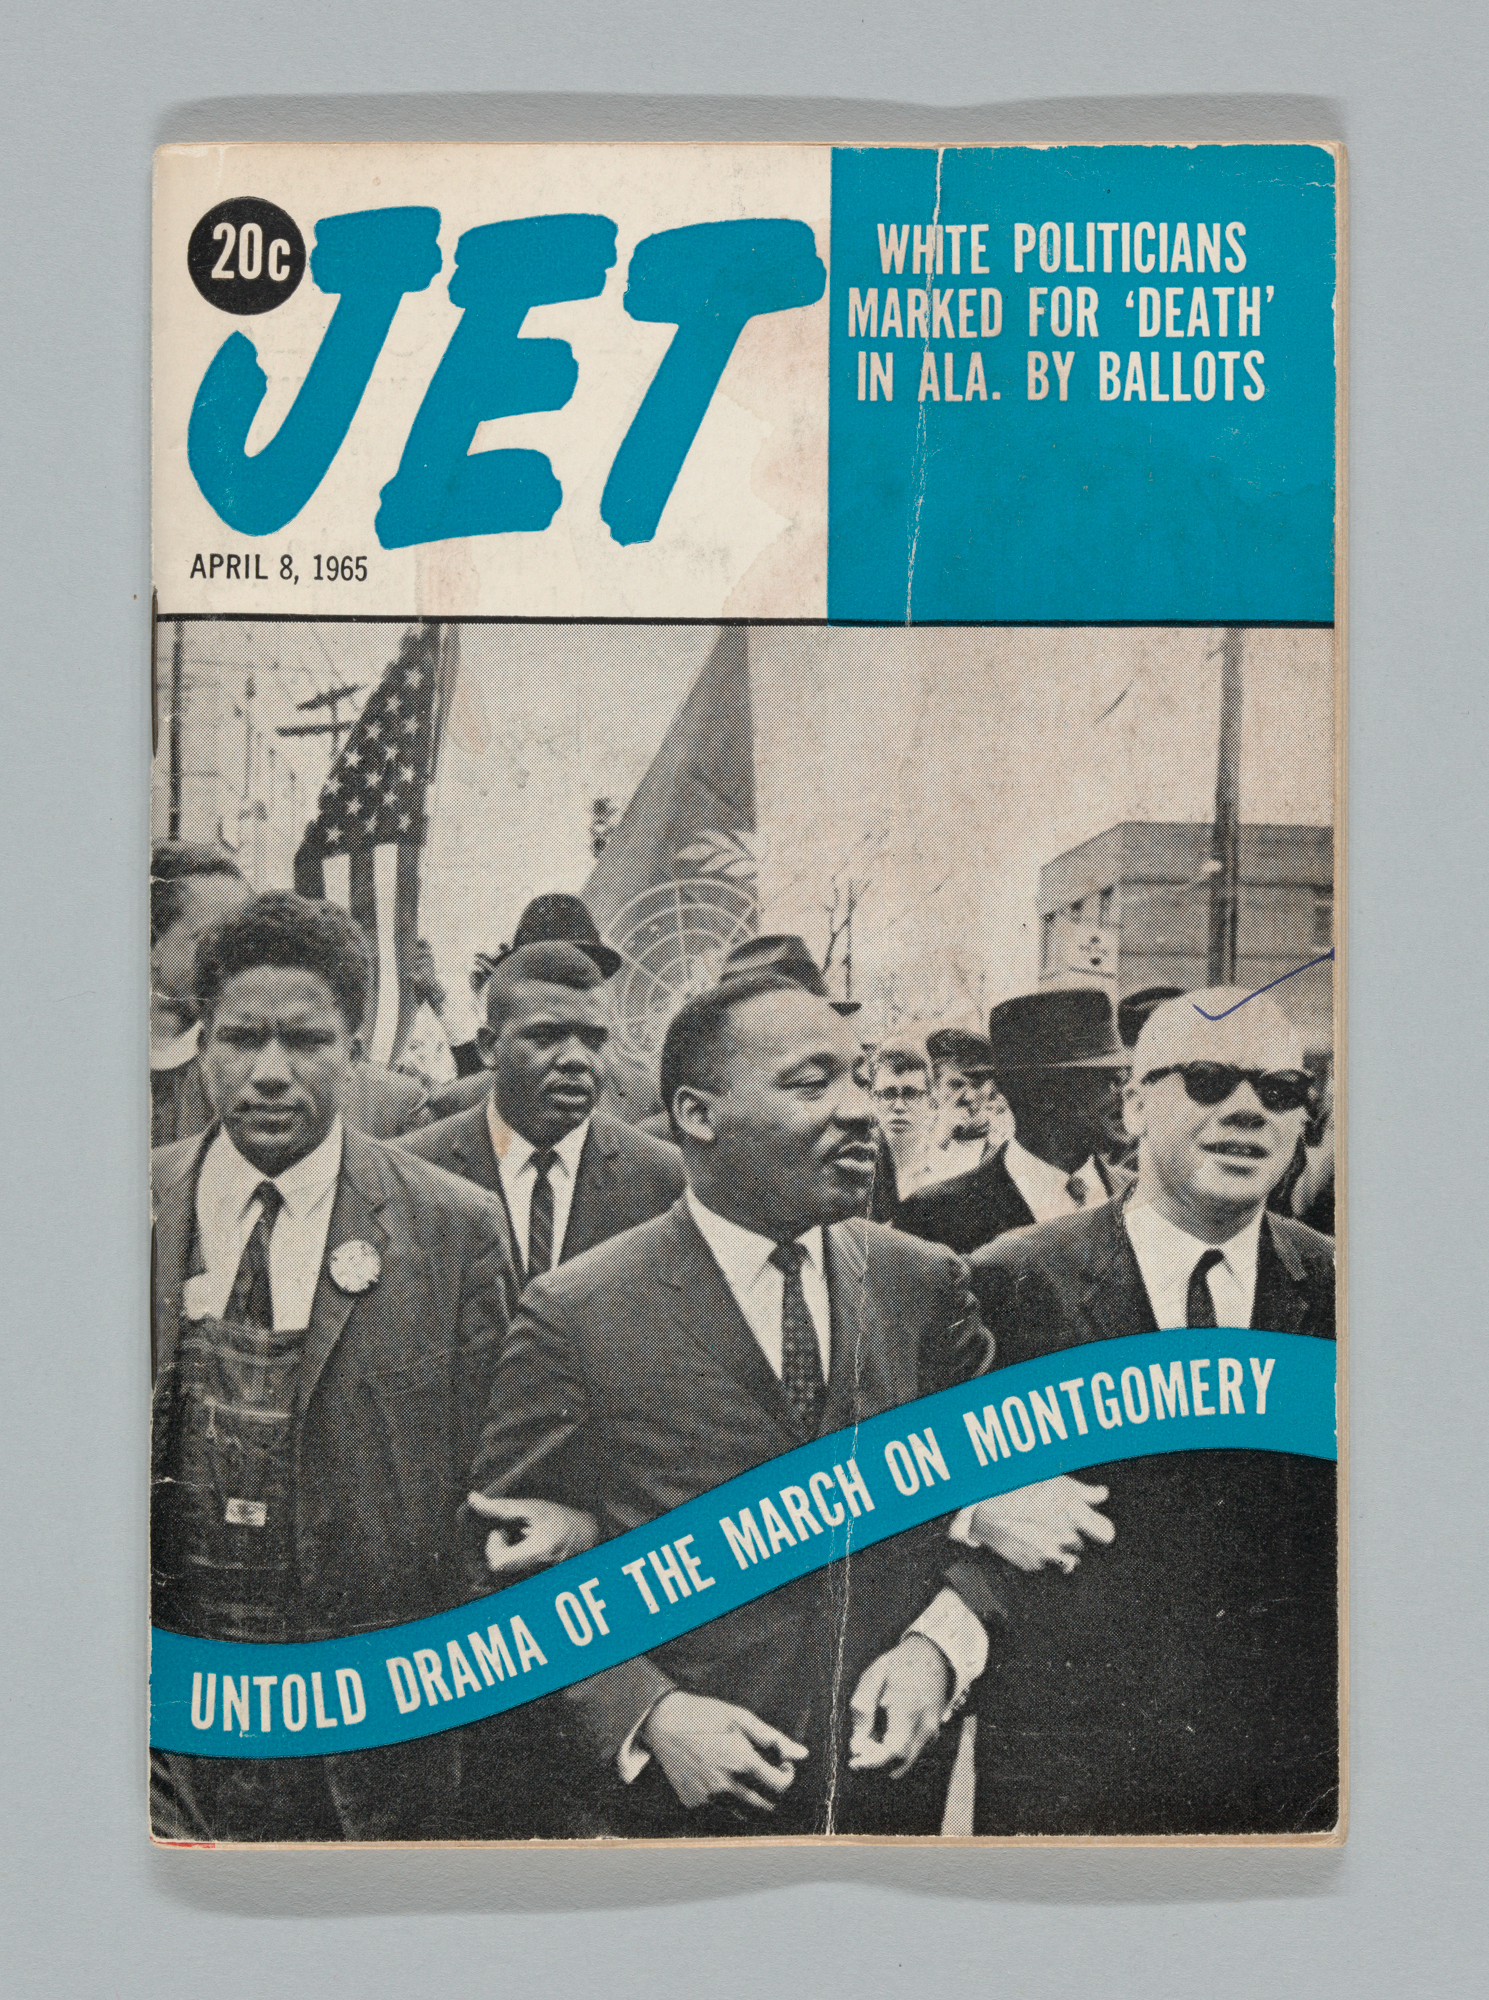 Jet Magazine, April 8, 1965. Cover